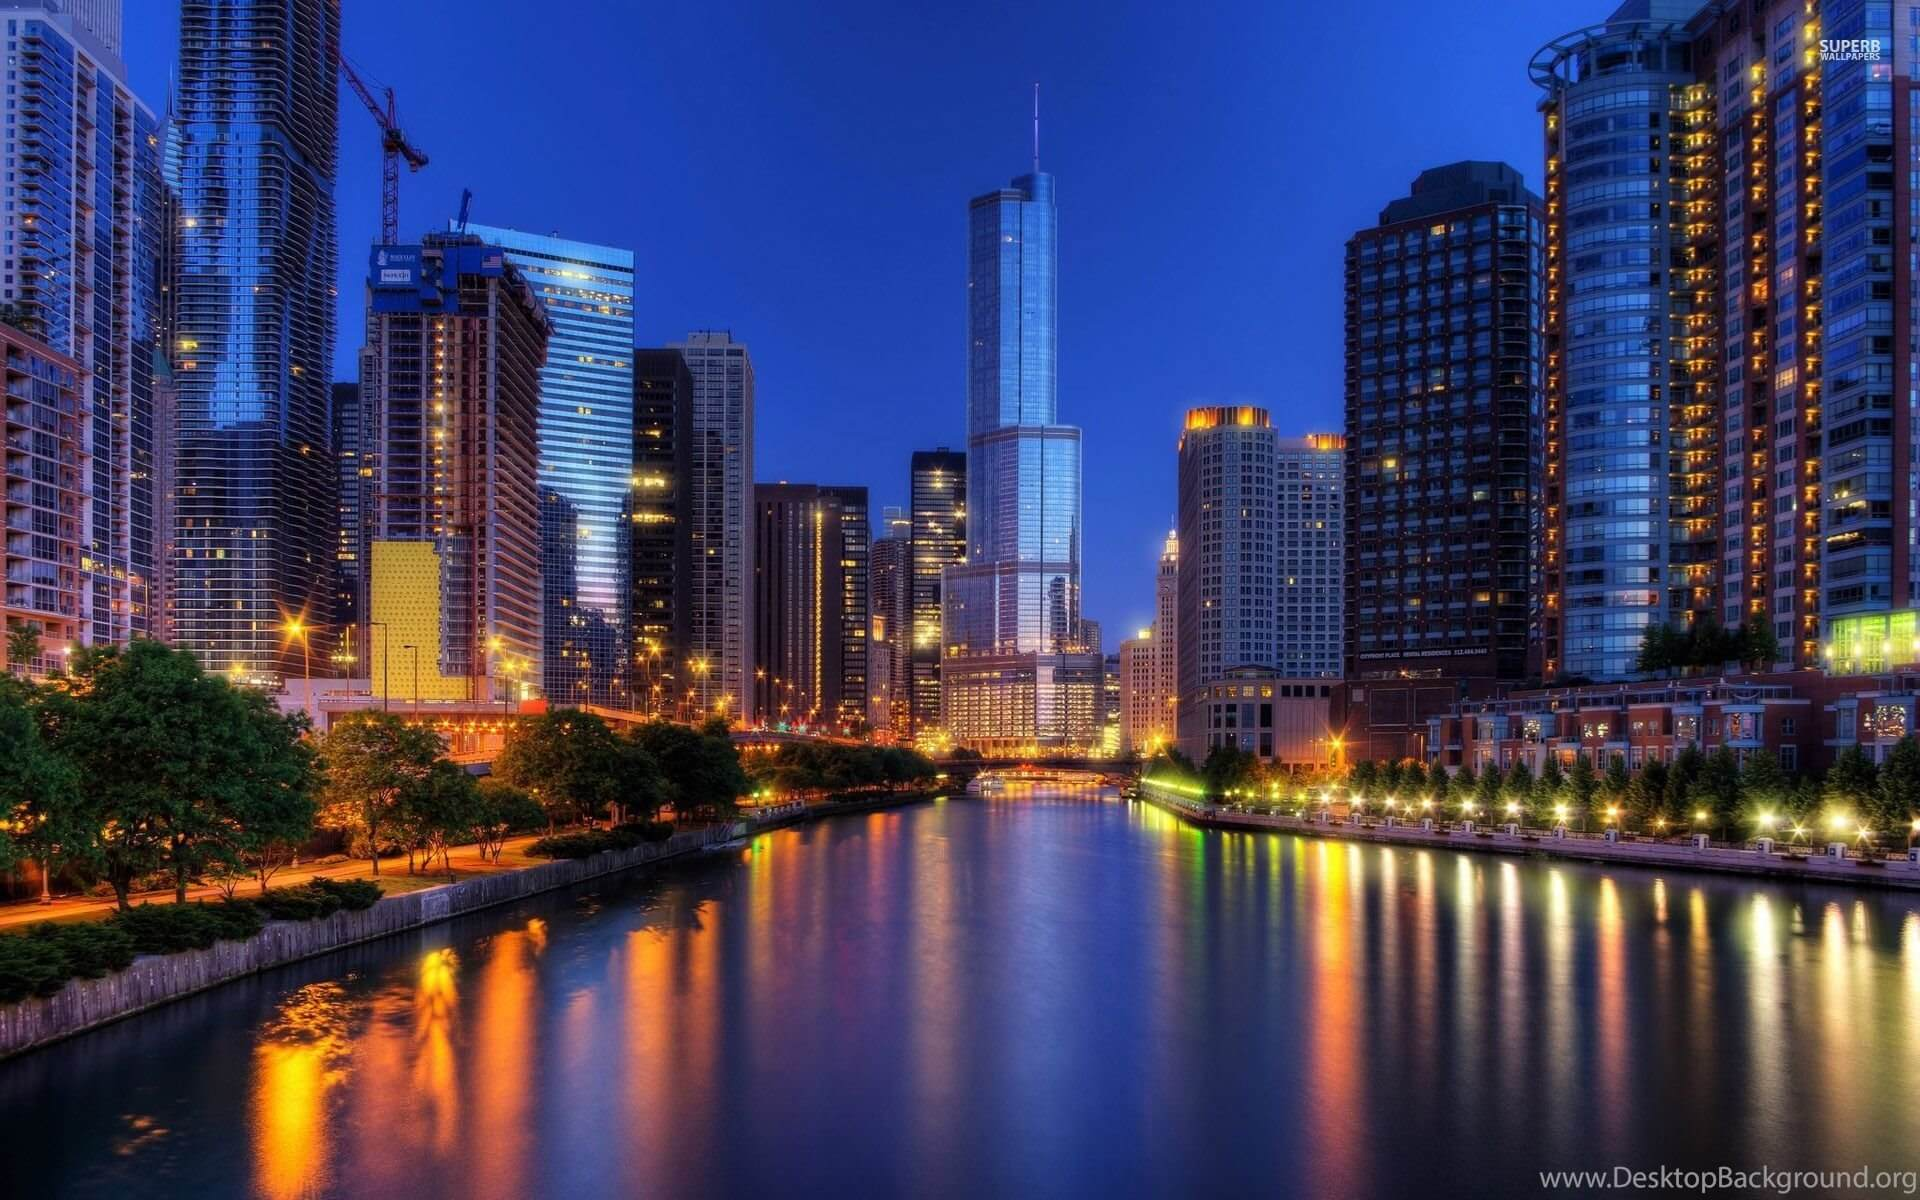 Highlights from the CRMC Conference in Chicago